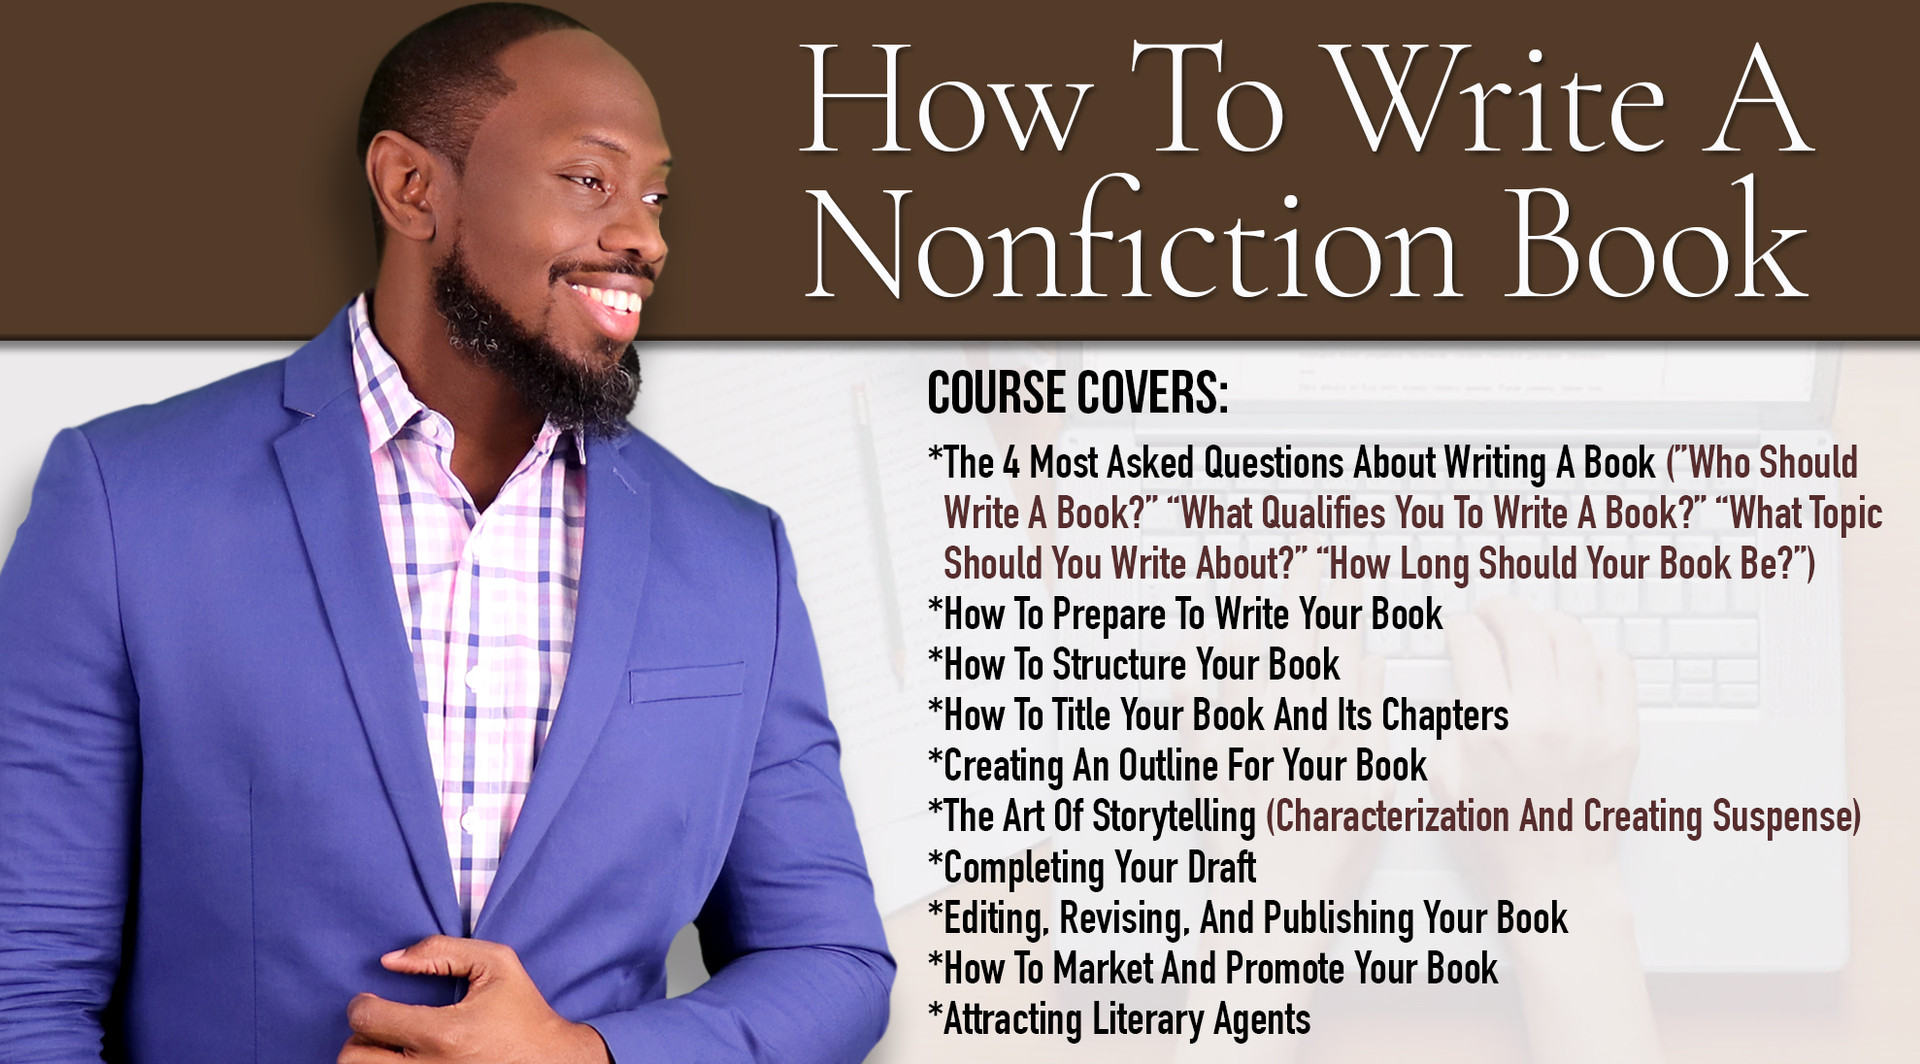 How To Write A Nonfiction Book.jpg